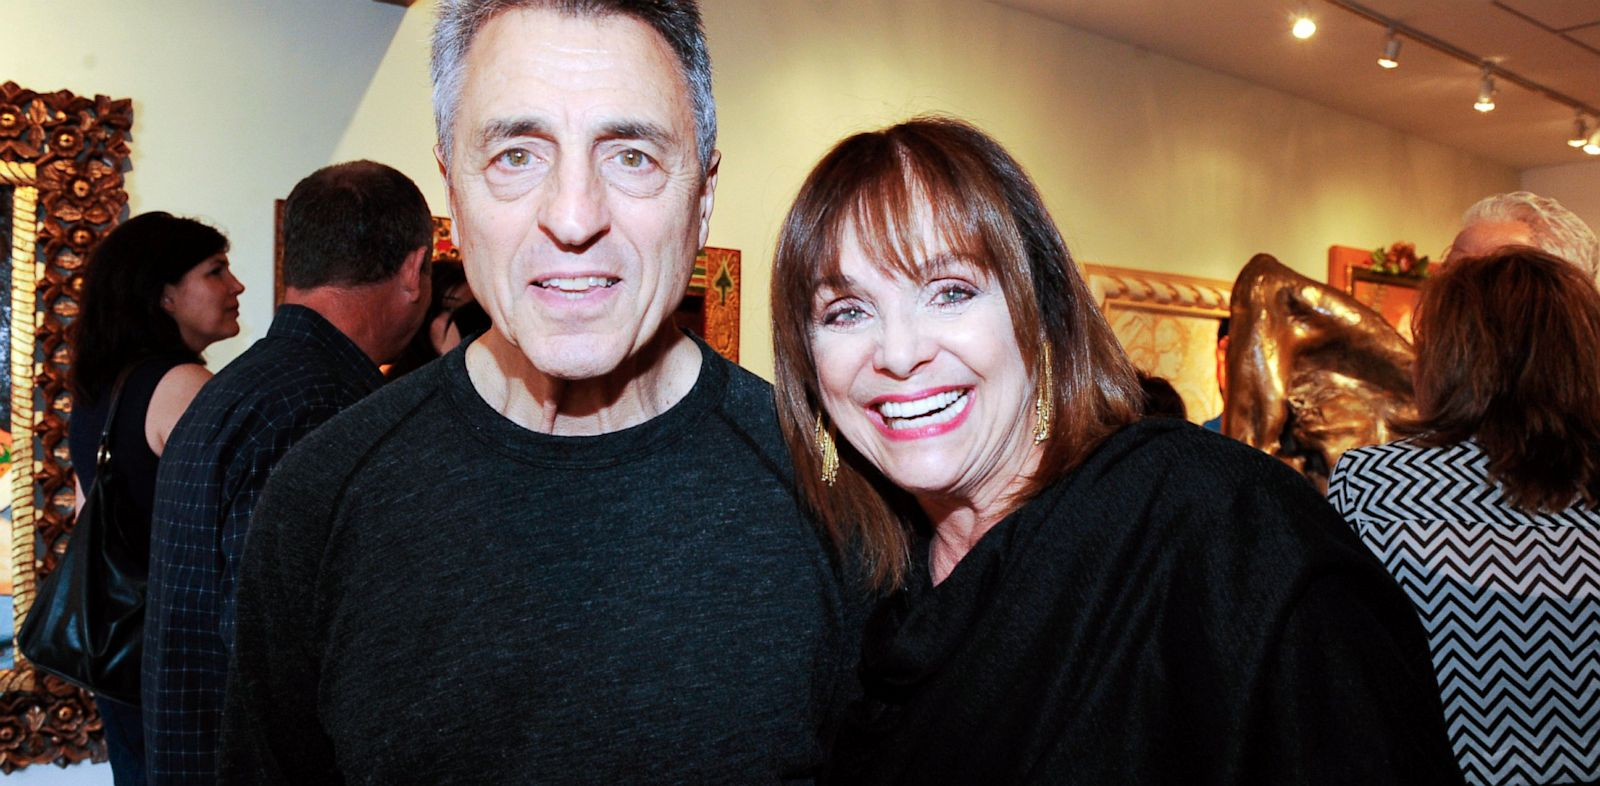 PHOTO: Tony Cacciotti and Valerie Harper